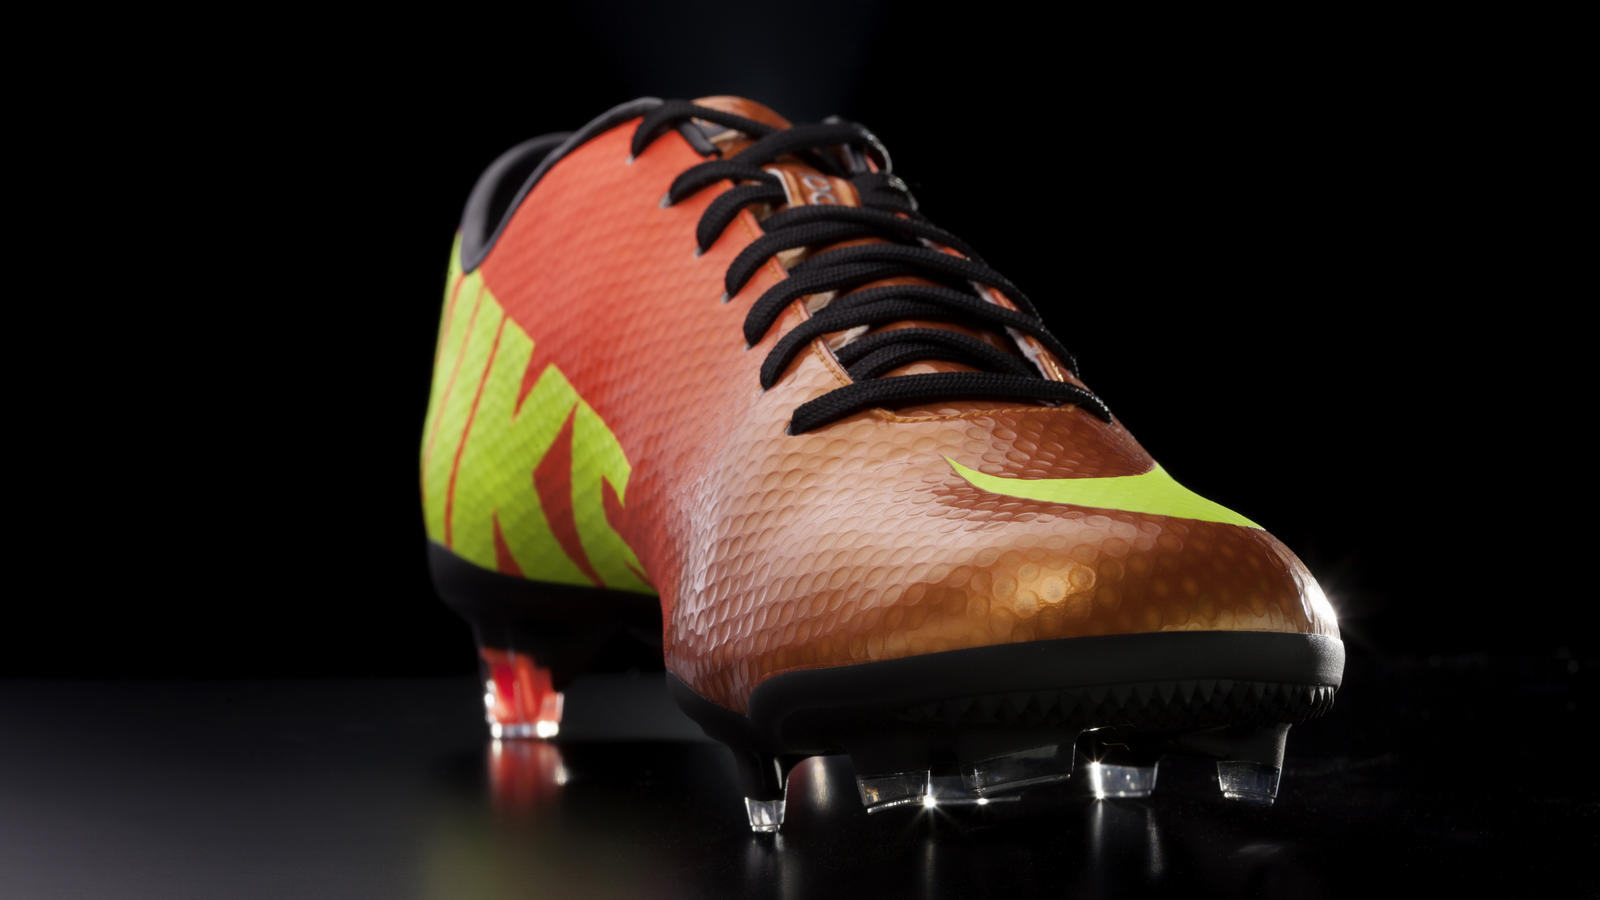 Nike Mercurial Vapor Ix Delivers Performance Innovation And